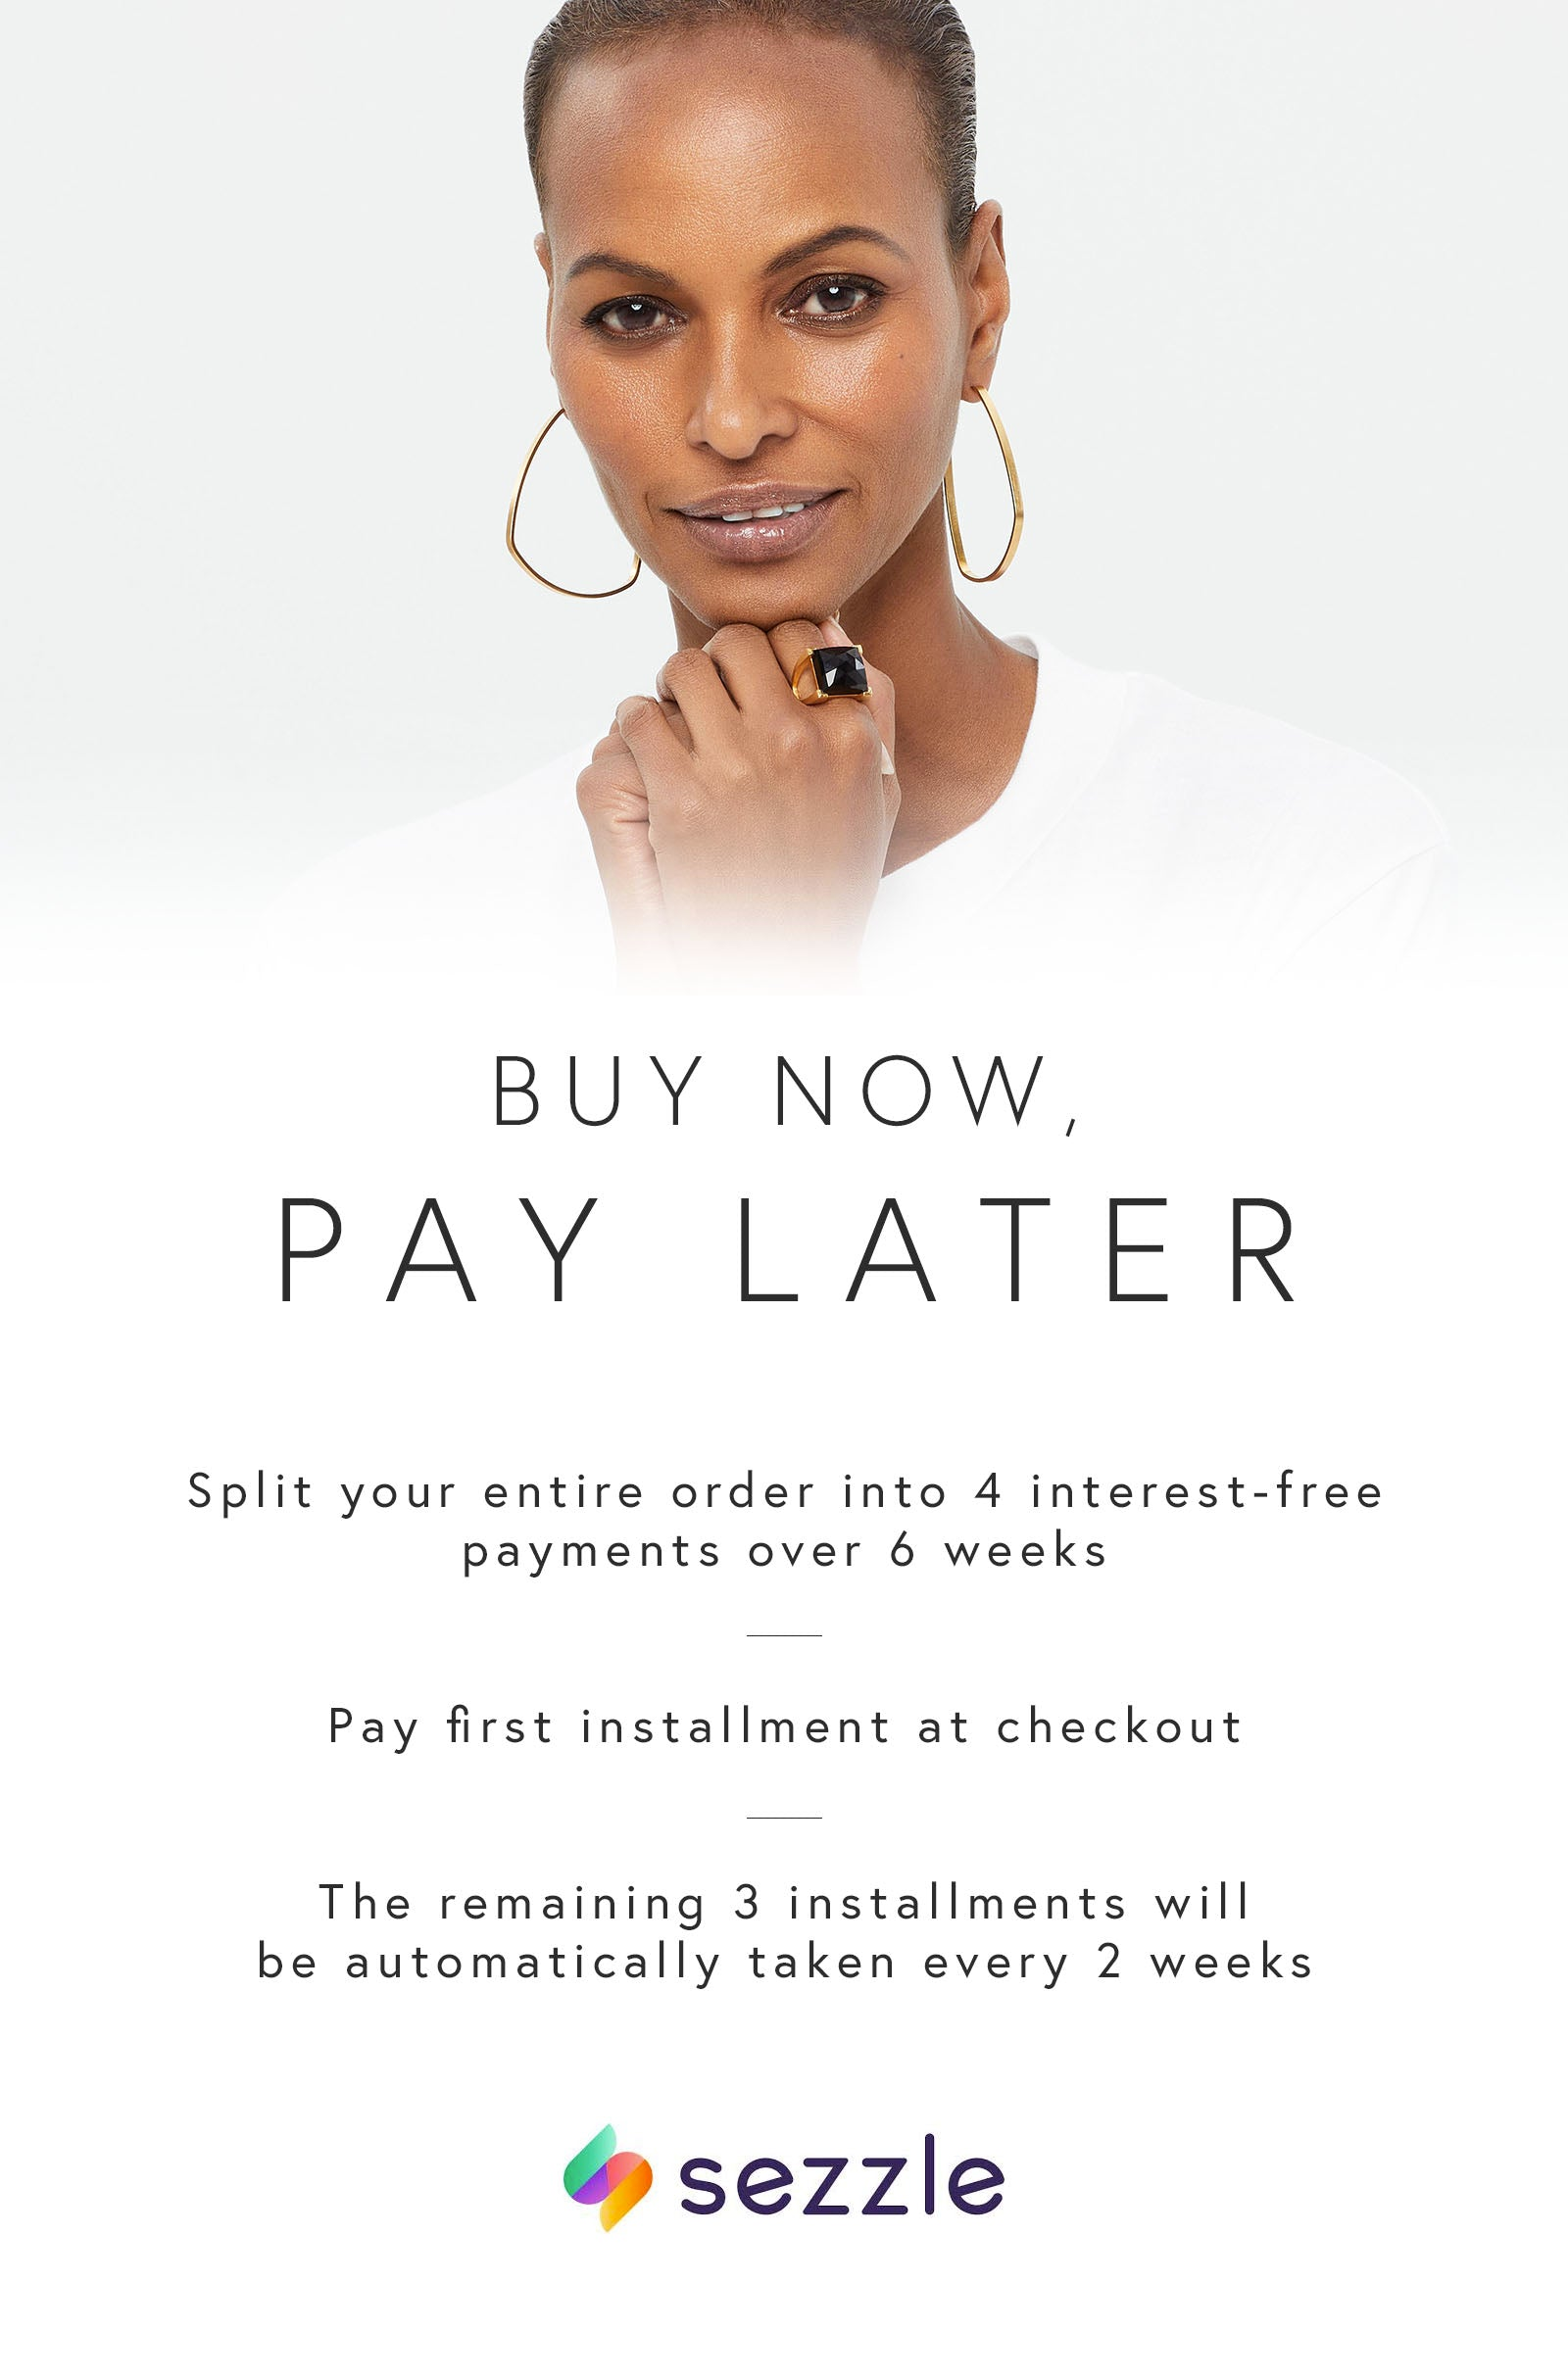 DEAN DAVIDSON JEWELRY PAYMENT BUY NOW PAY LATER SEZZLE